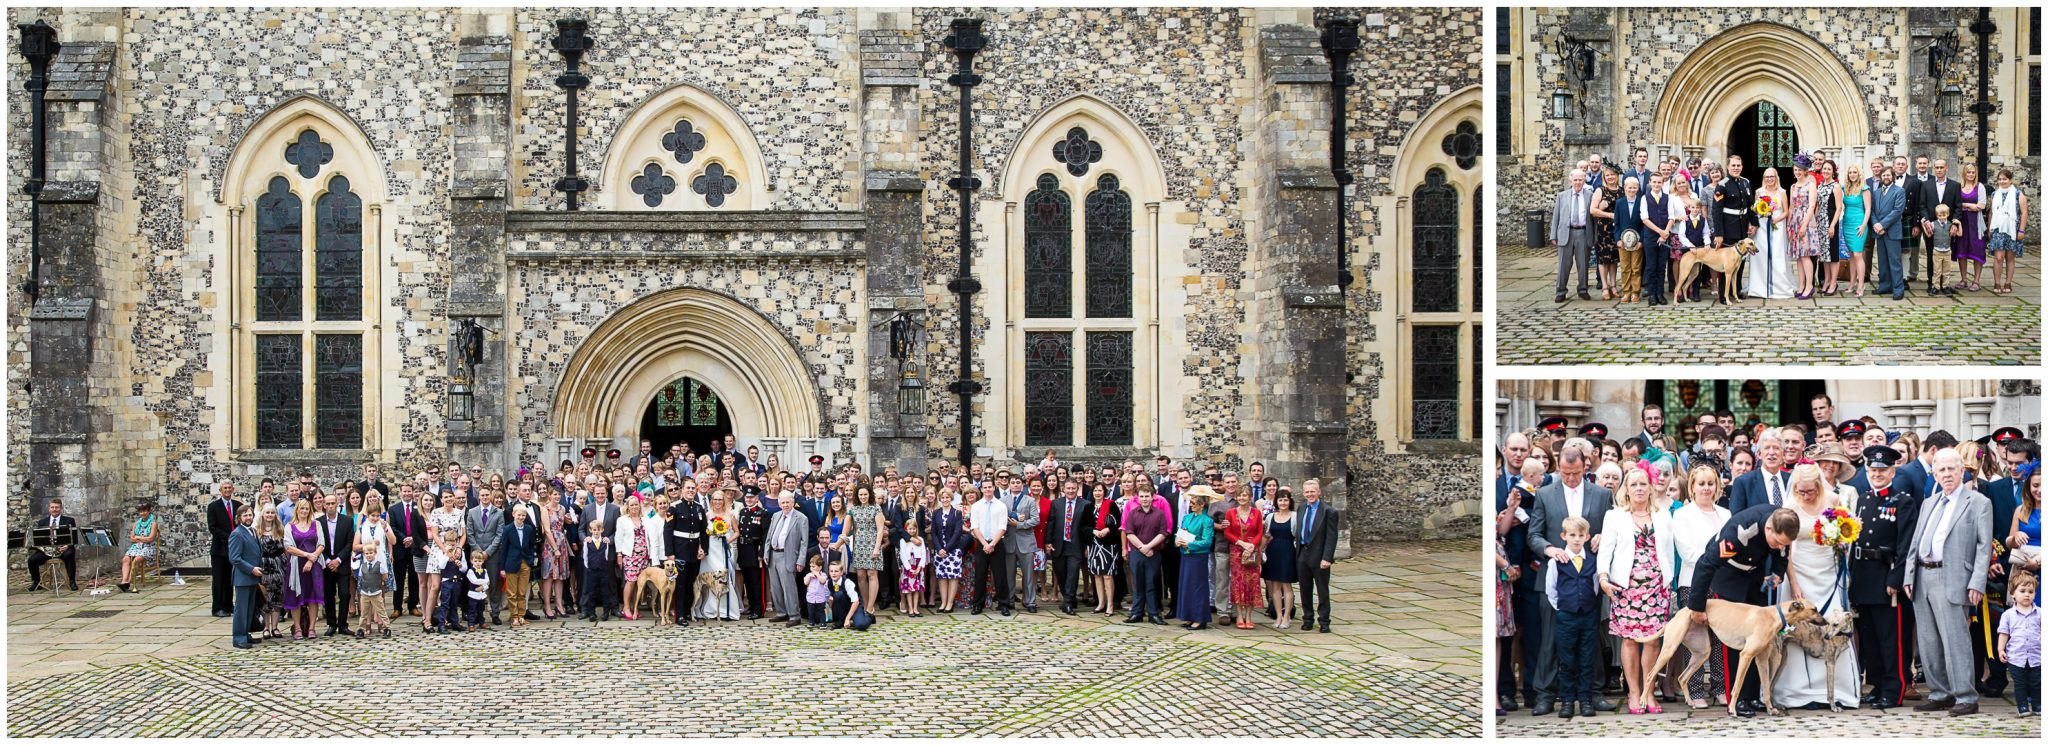 Winchester Great Hall wedding photography group photos outside main entrance